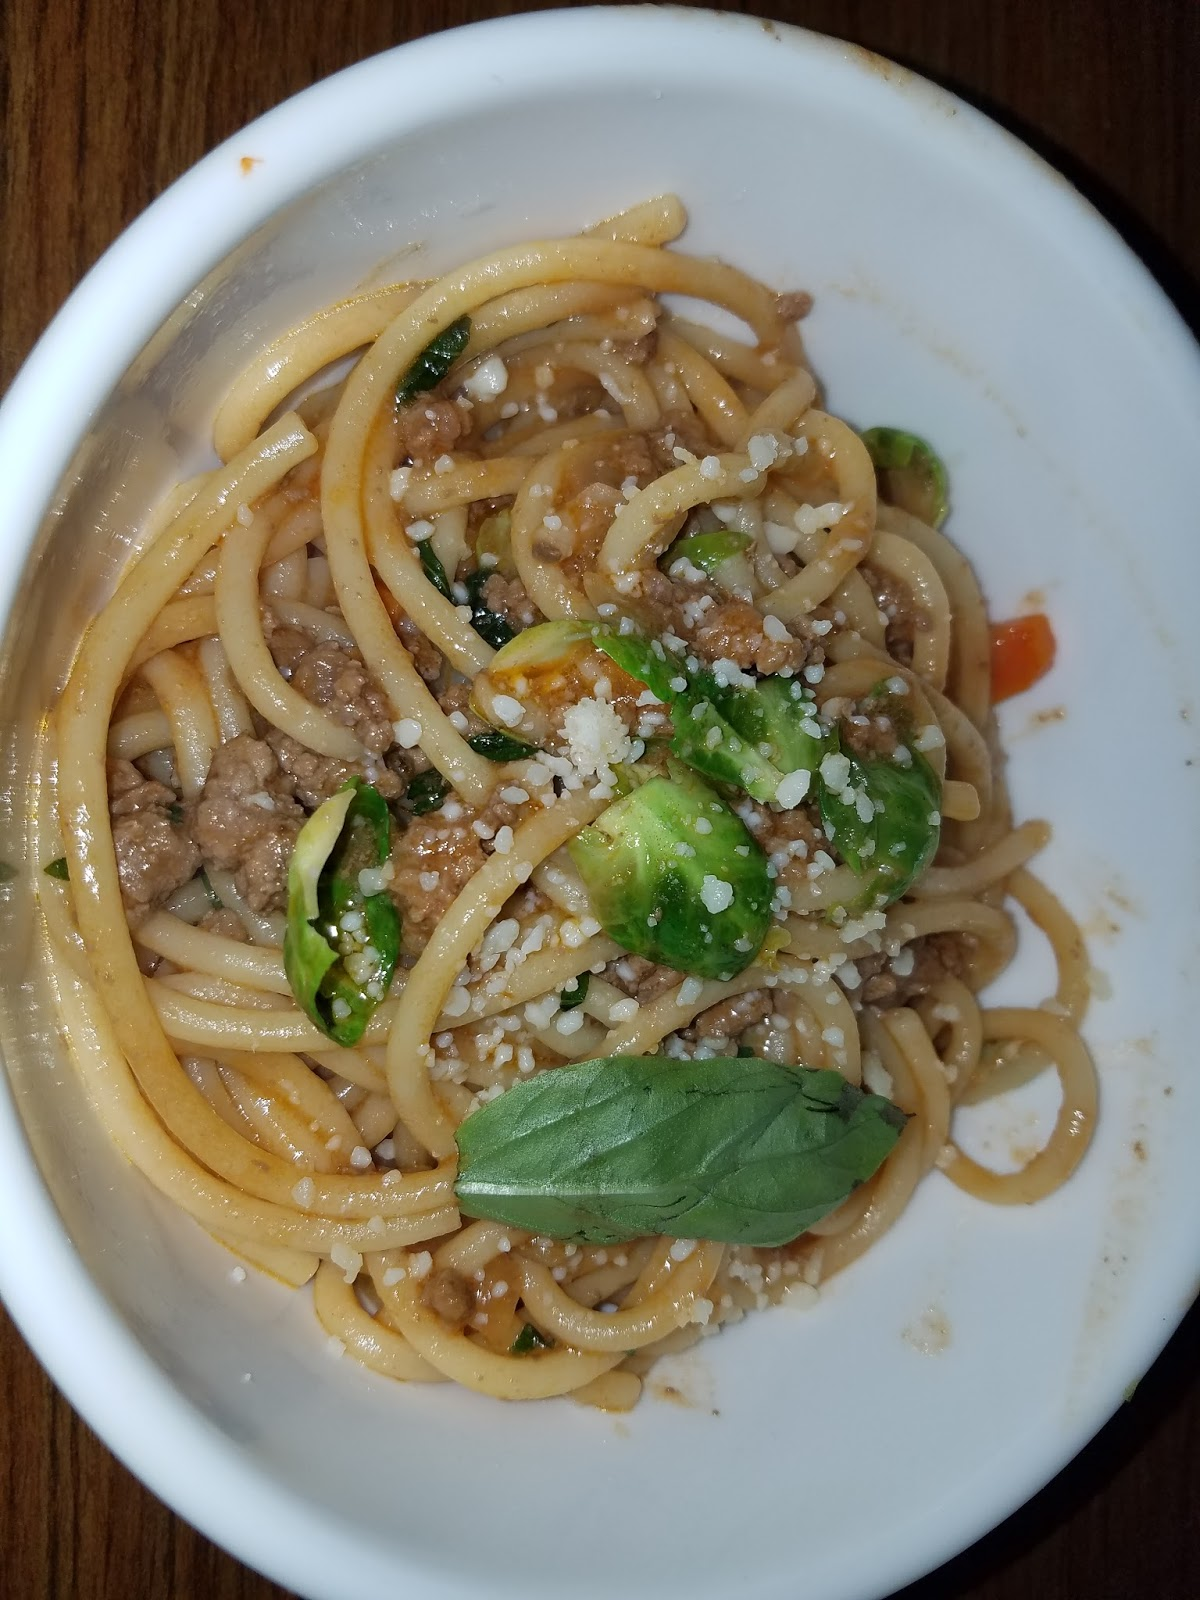 Blue apron bucatini - If There S One Thing I Think This Recipe Could Have Used With Even Though I Loathe Red Sauce Would Be More Tomato Maybe Adding Some Tomato Paste In